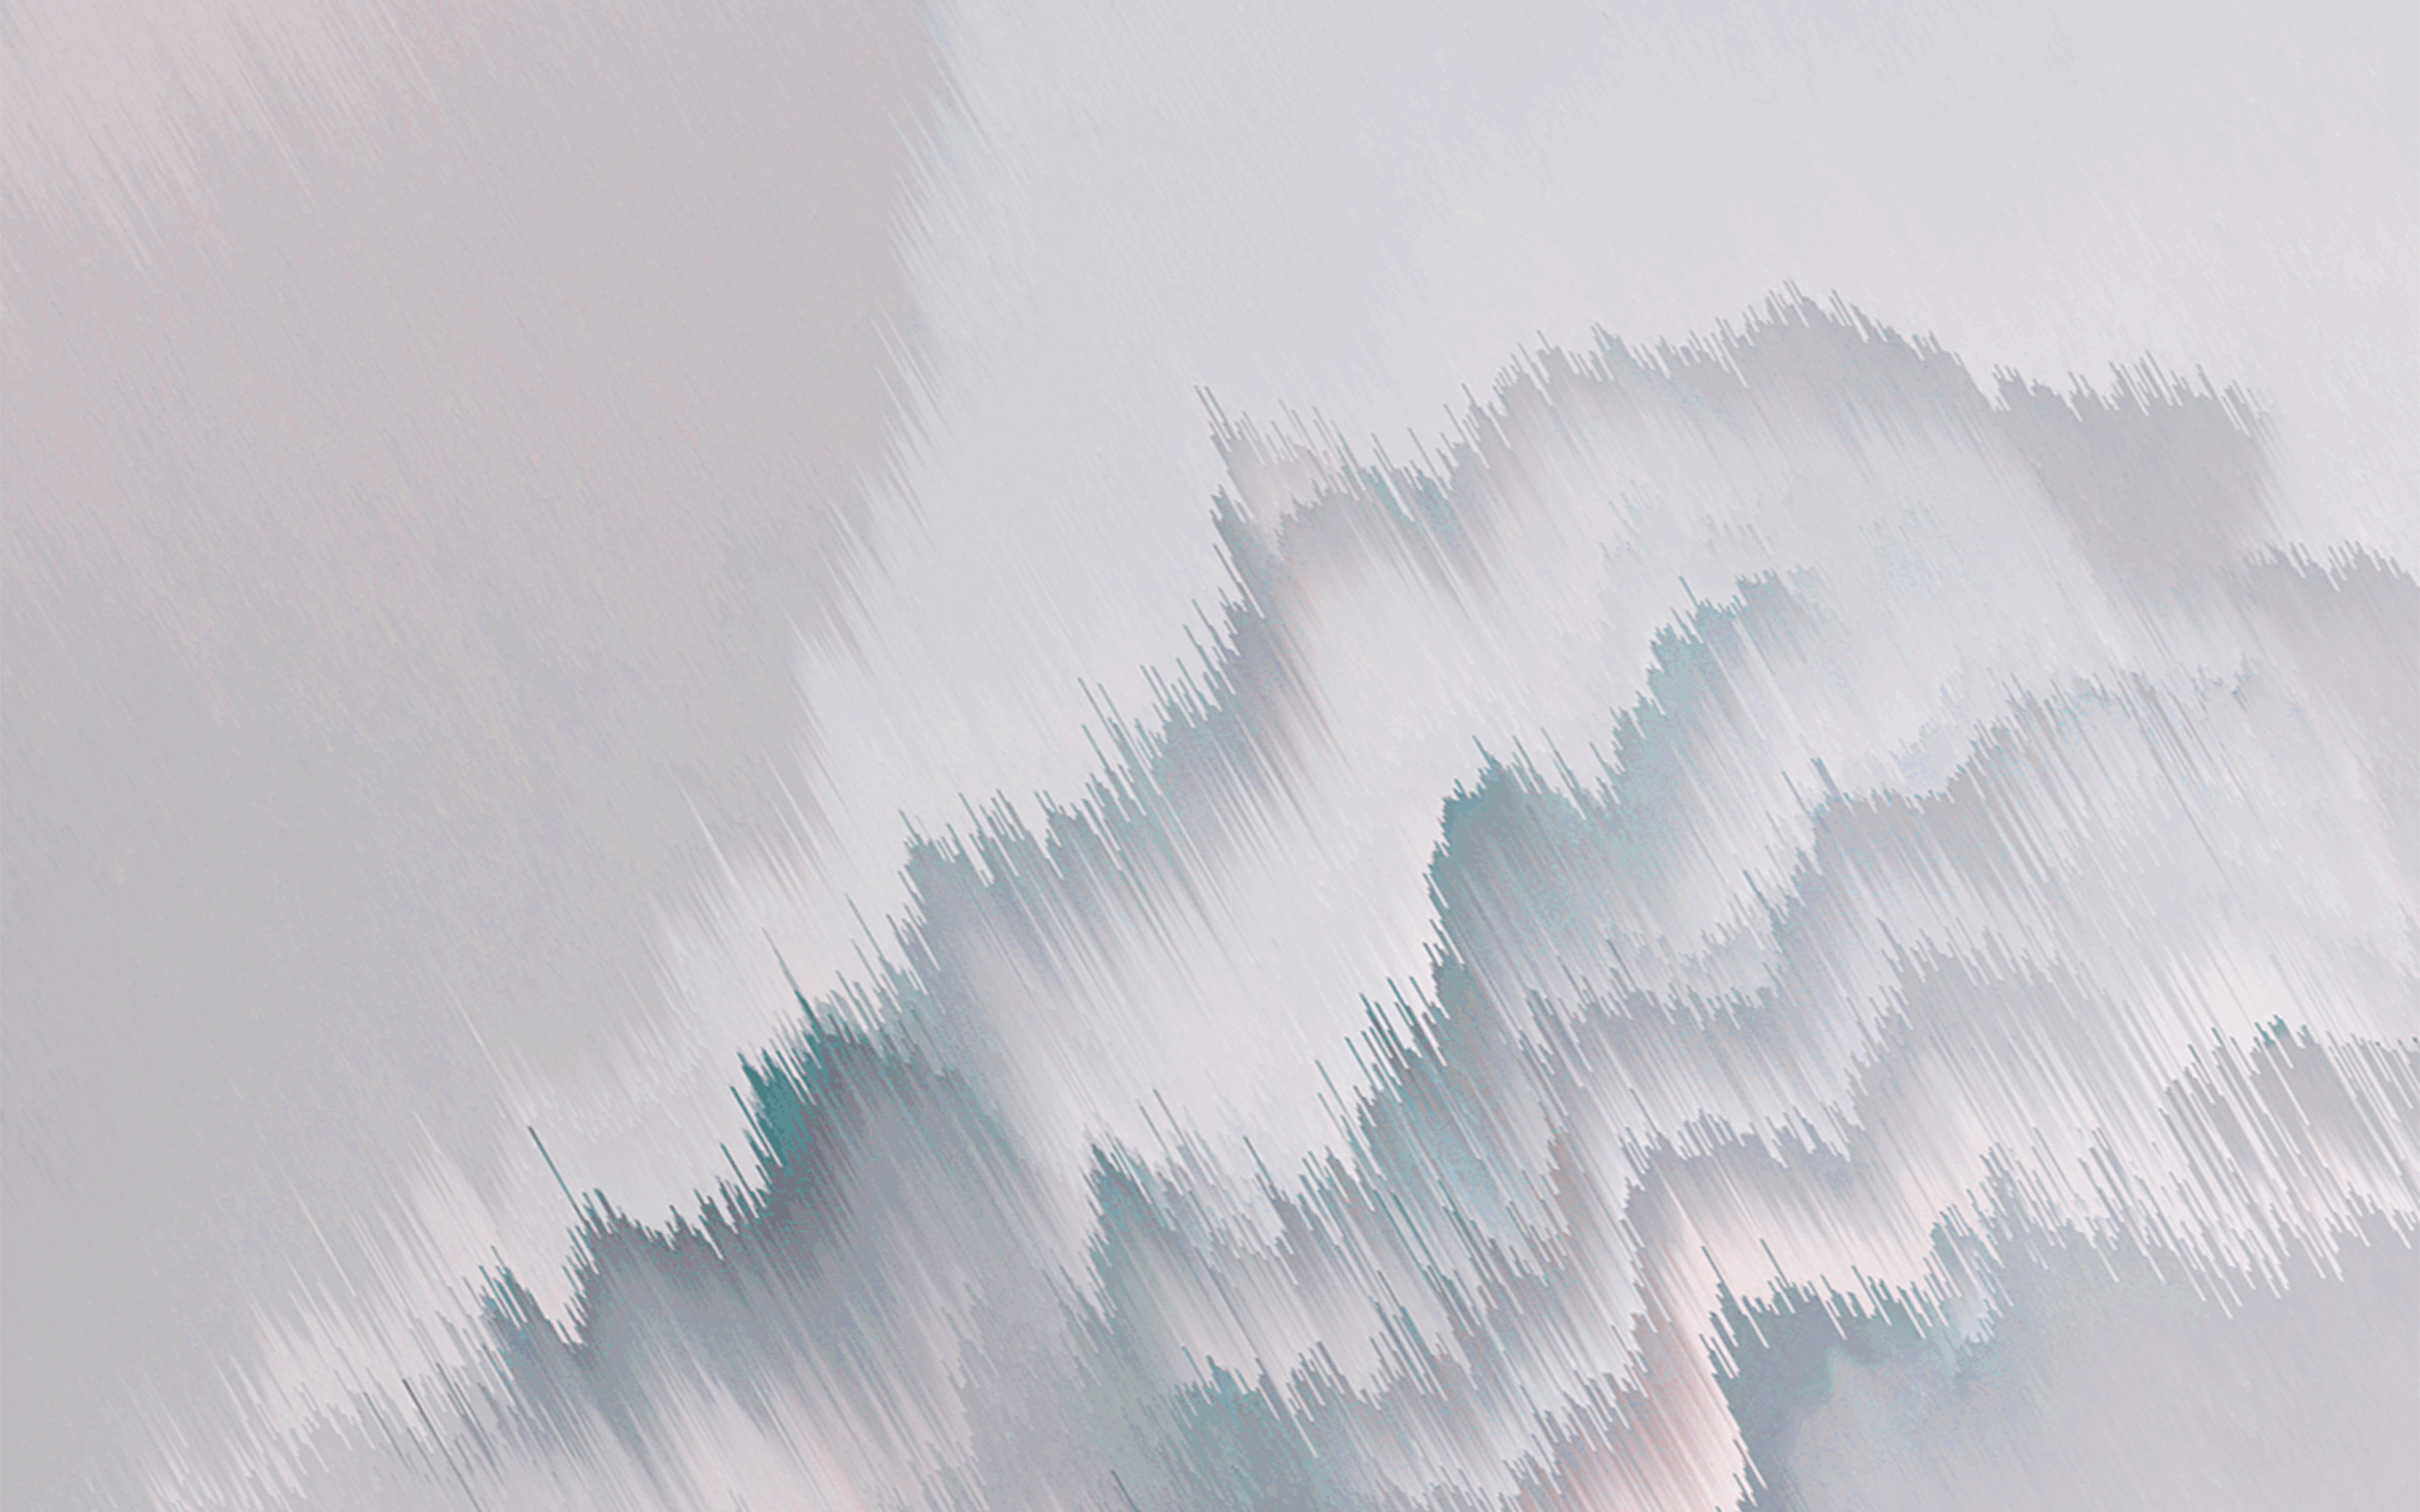 Wallpaper Waves with abstract distortion